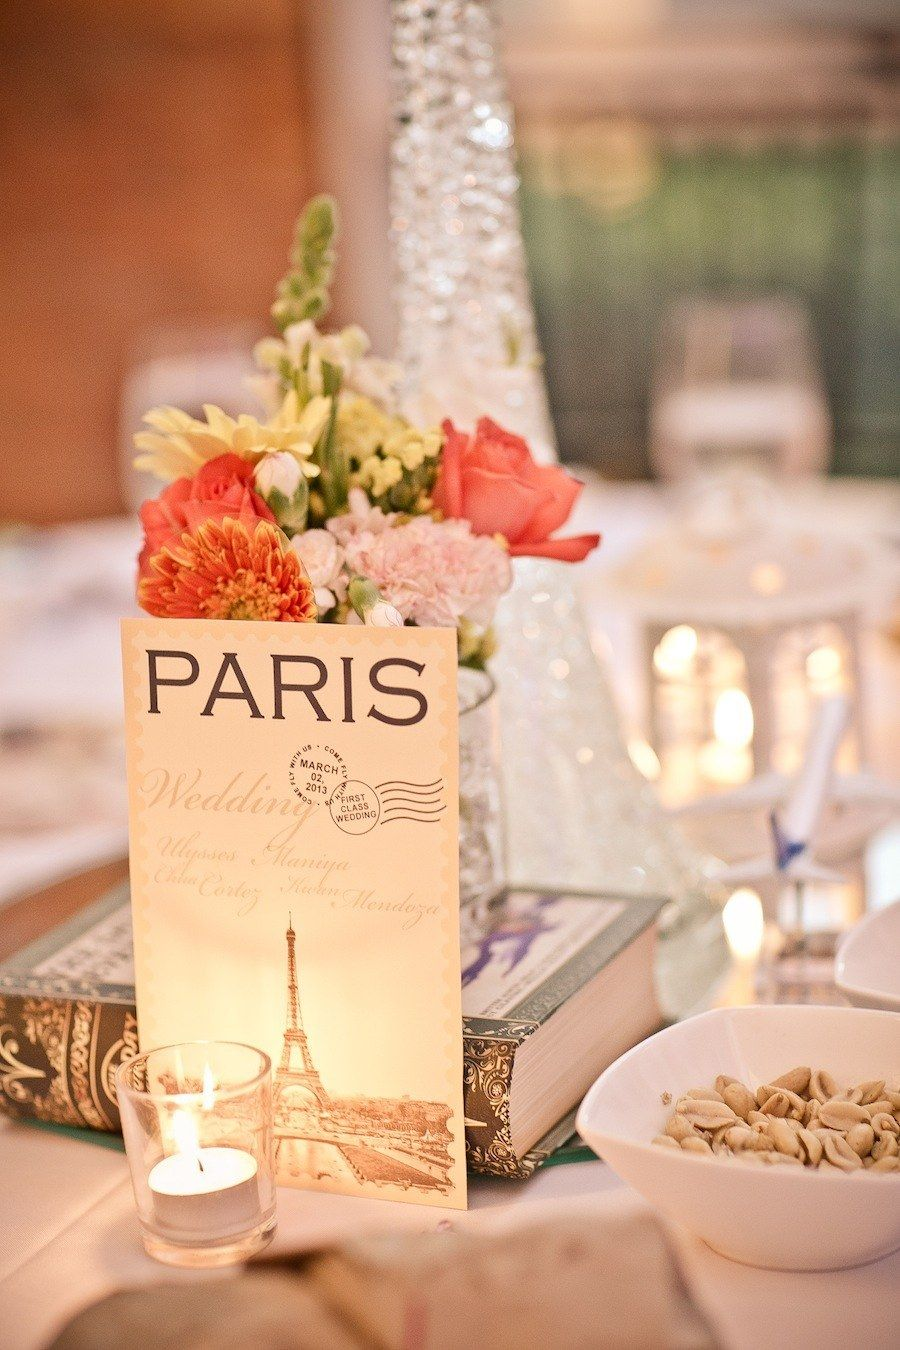 27 travel inspired wedding ideas youll want to steal wedding turn favorite cities into centerpieces at your wedding our table centerpieces from places youve been or going junglespirit Image collections